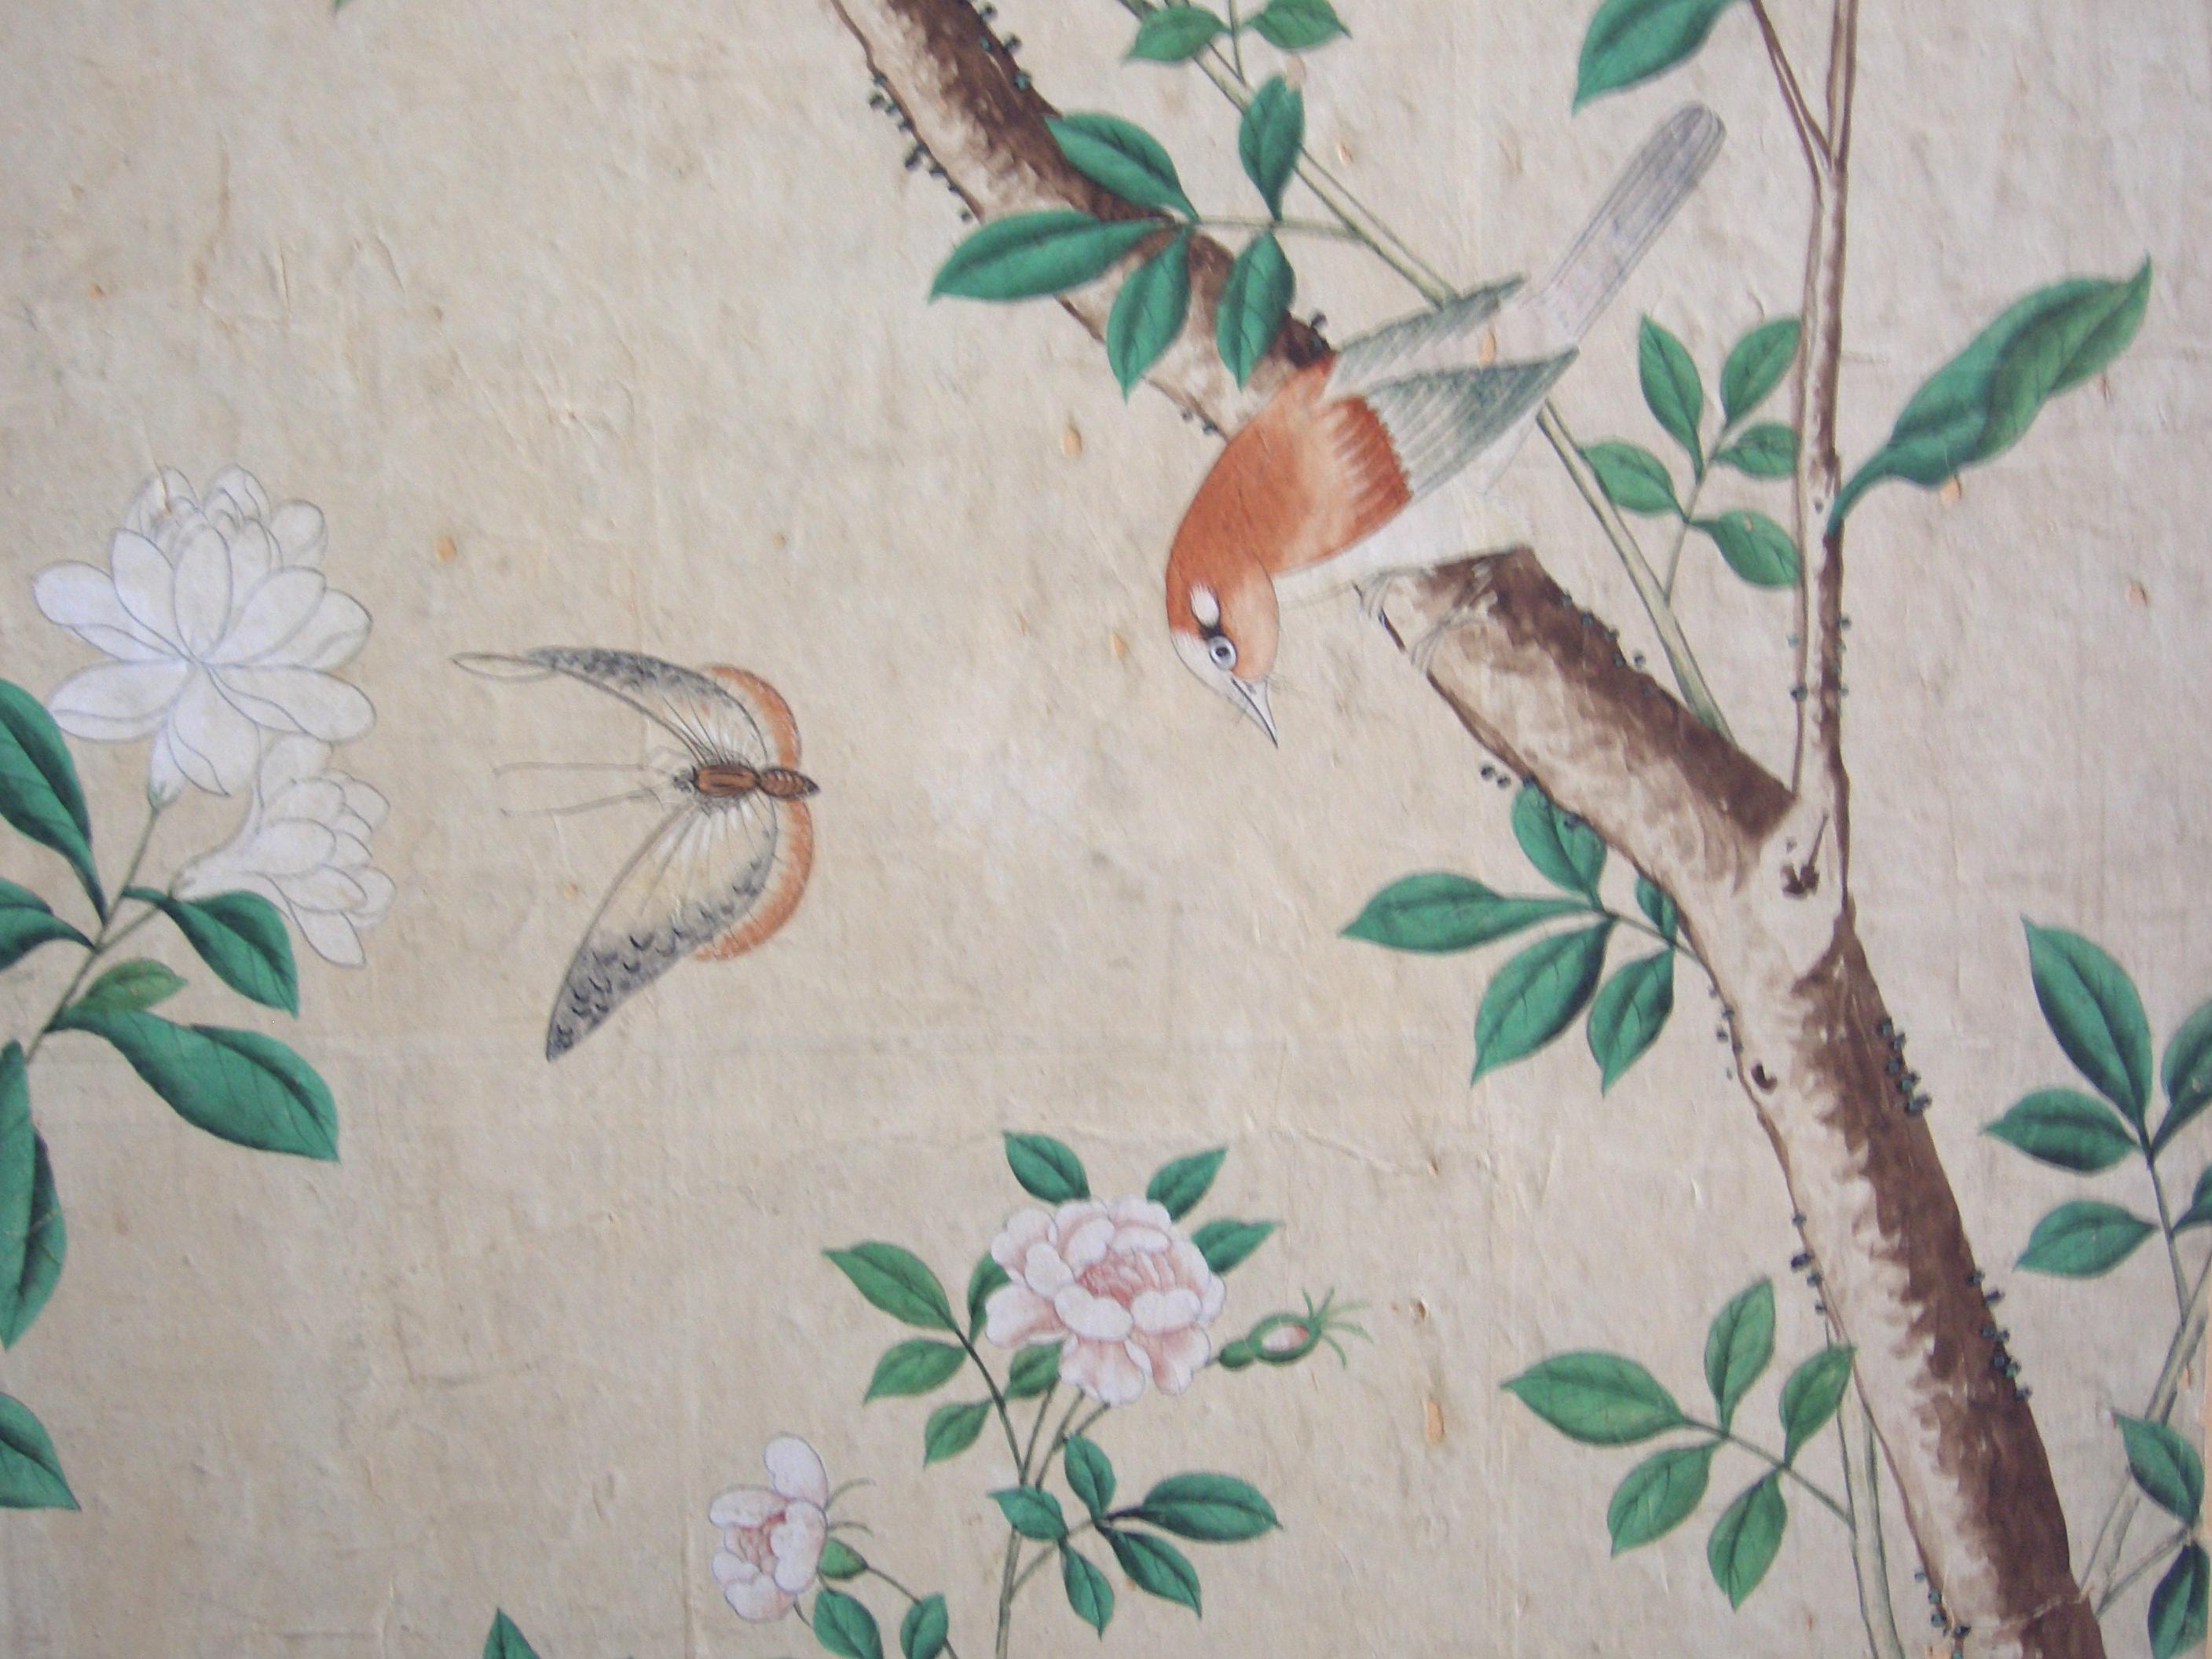 Chinese Wallpaper showing birds and plants. Qianlong period, approx. 1780